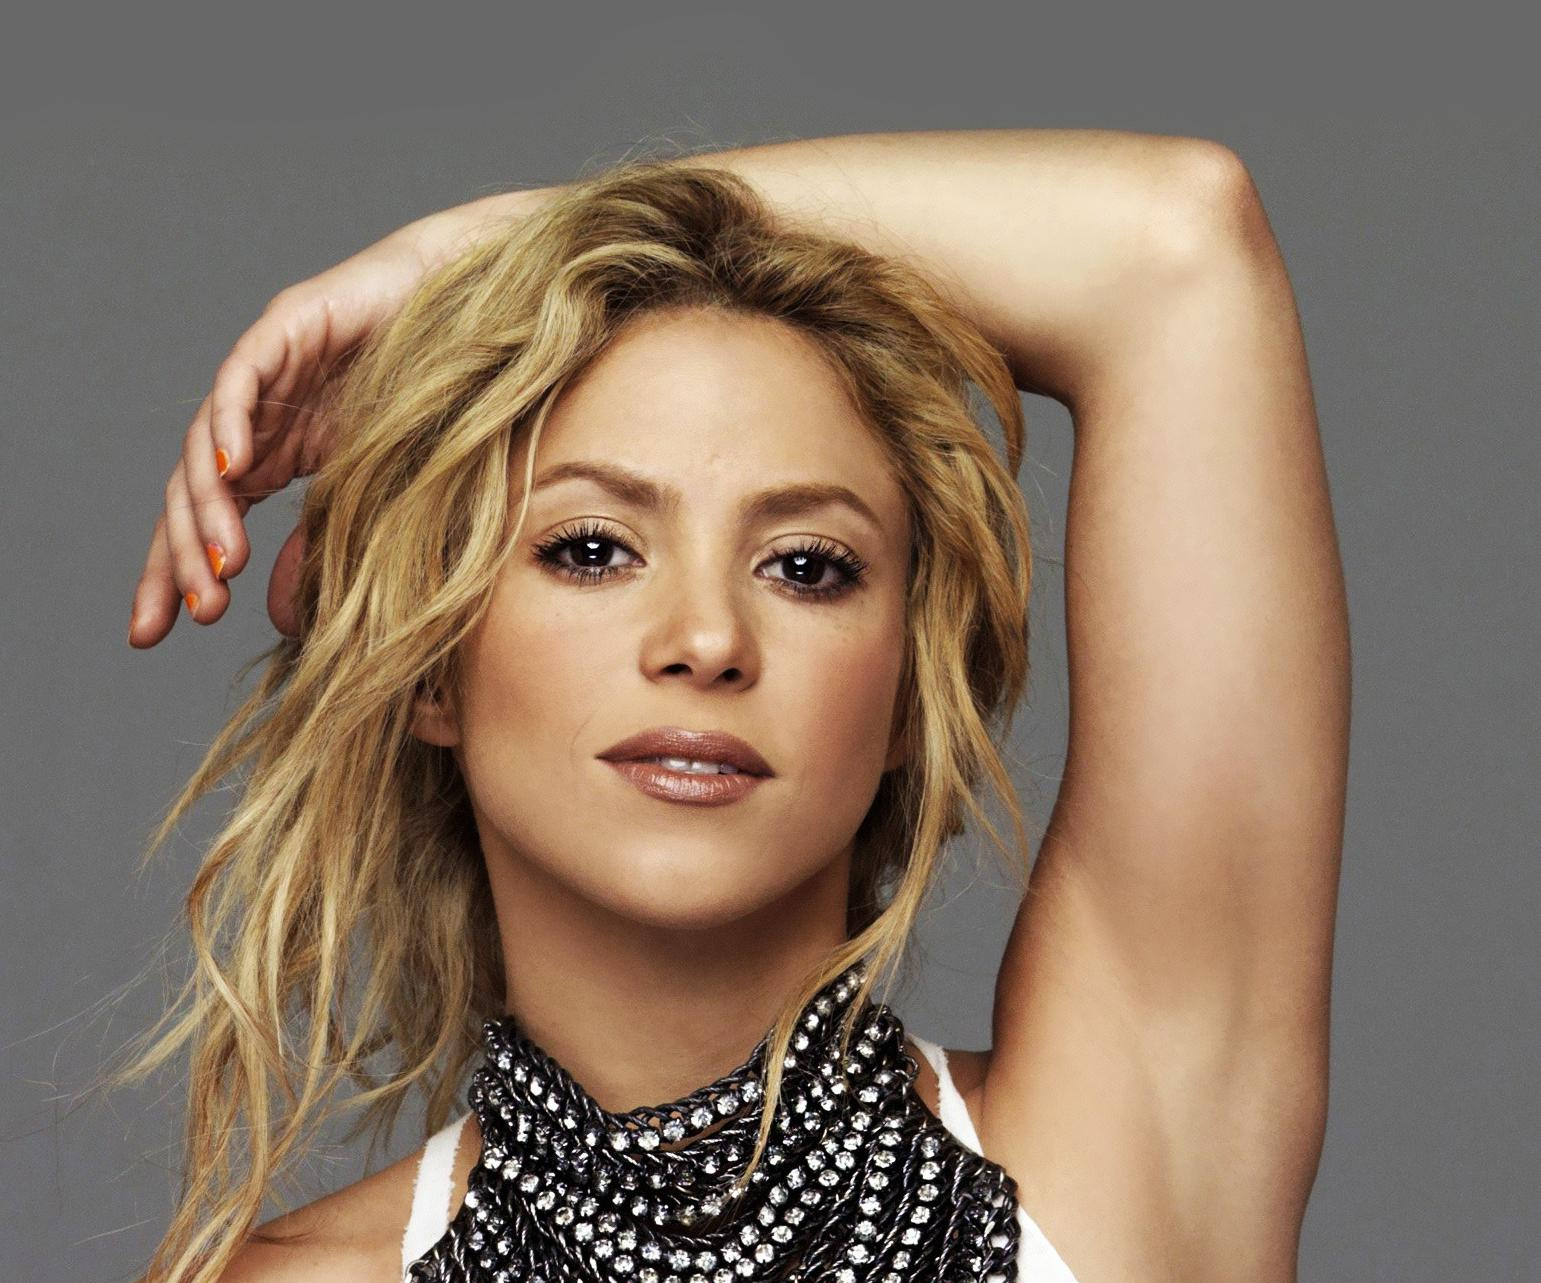 Gallery Pictures: Shakira different looks Shakira